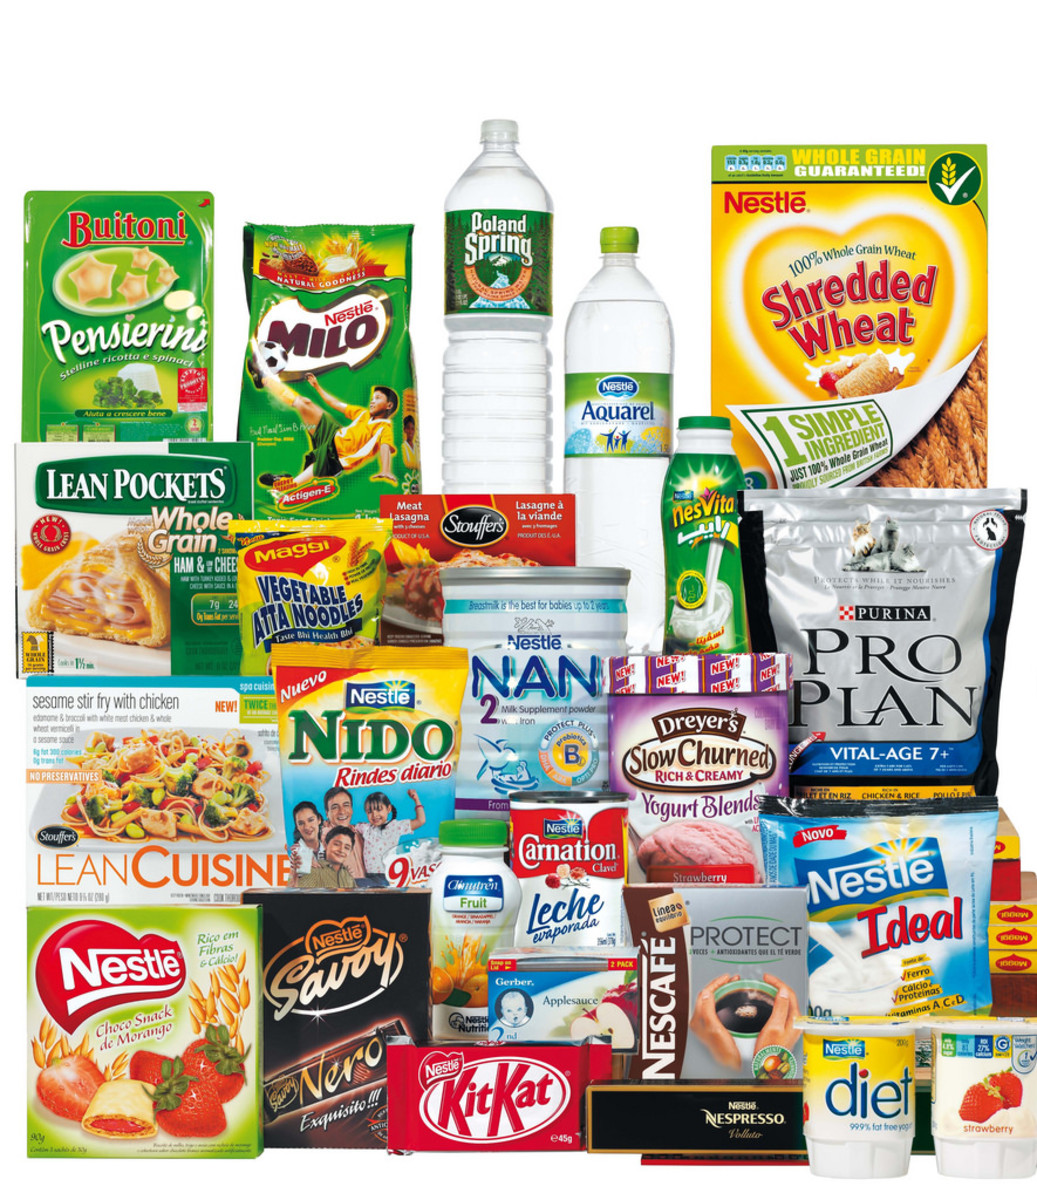 political in malaysia affect nestle Among the location factors that determined a malaysia location, he says, were political stability and a these include nestle from and to can affect the level.